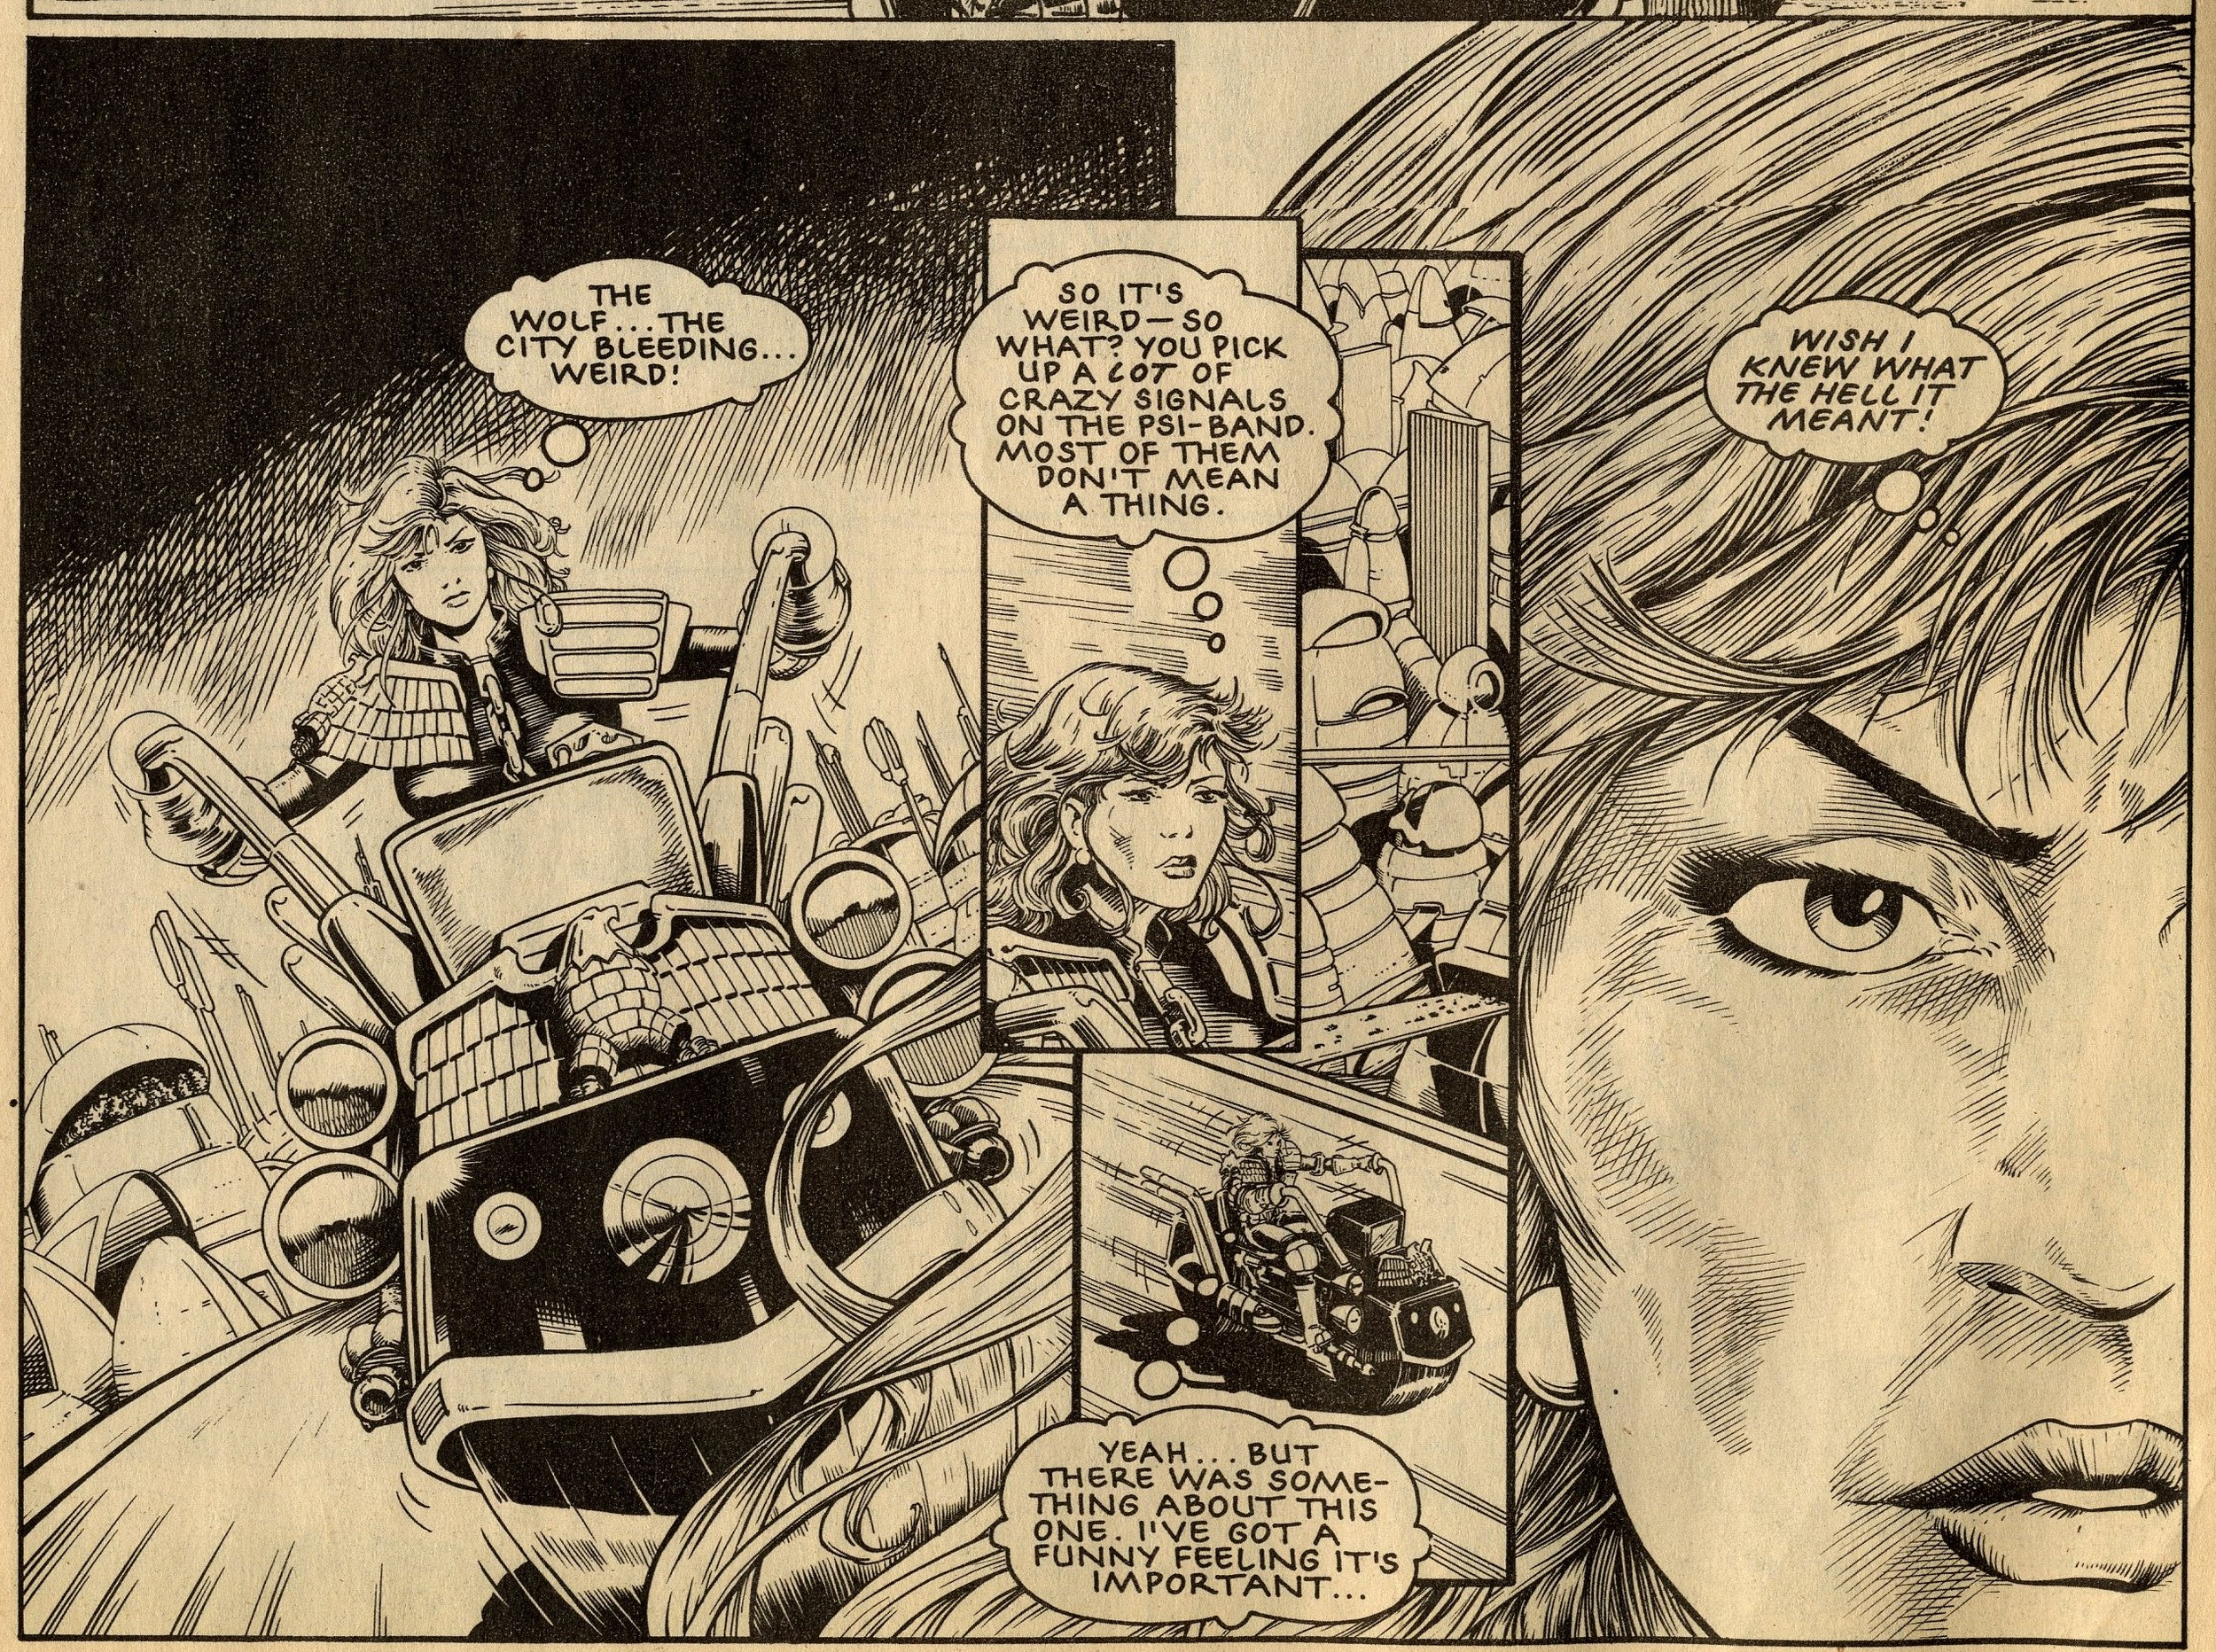 Anderson PSI Division: John Wagner and Alan Grant (writers), Barry Kitson (artist)